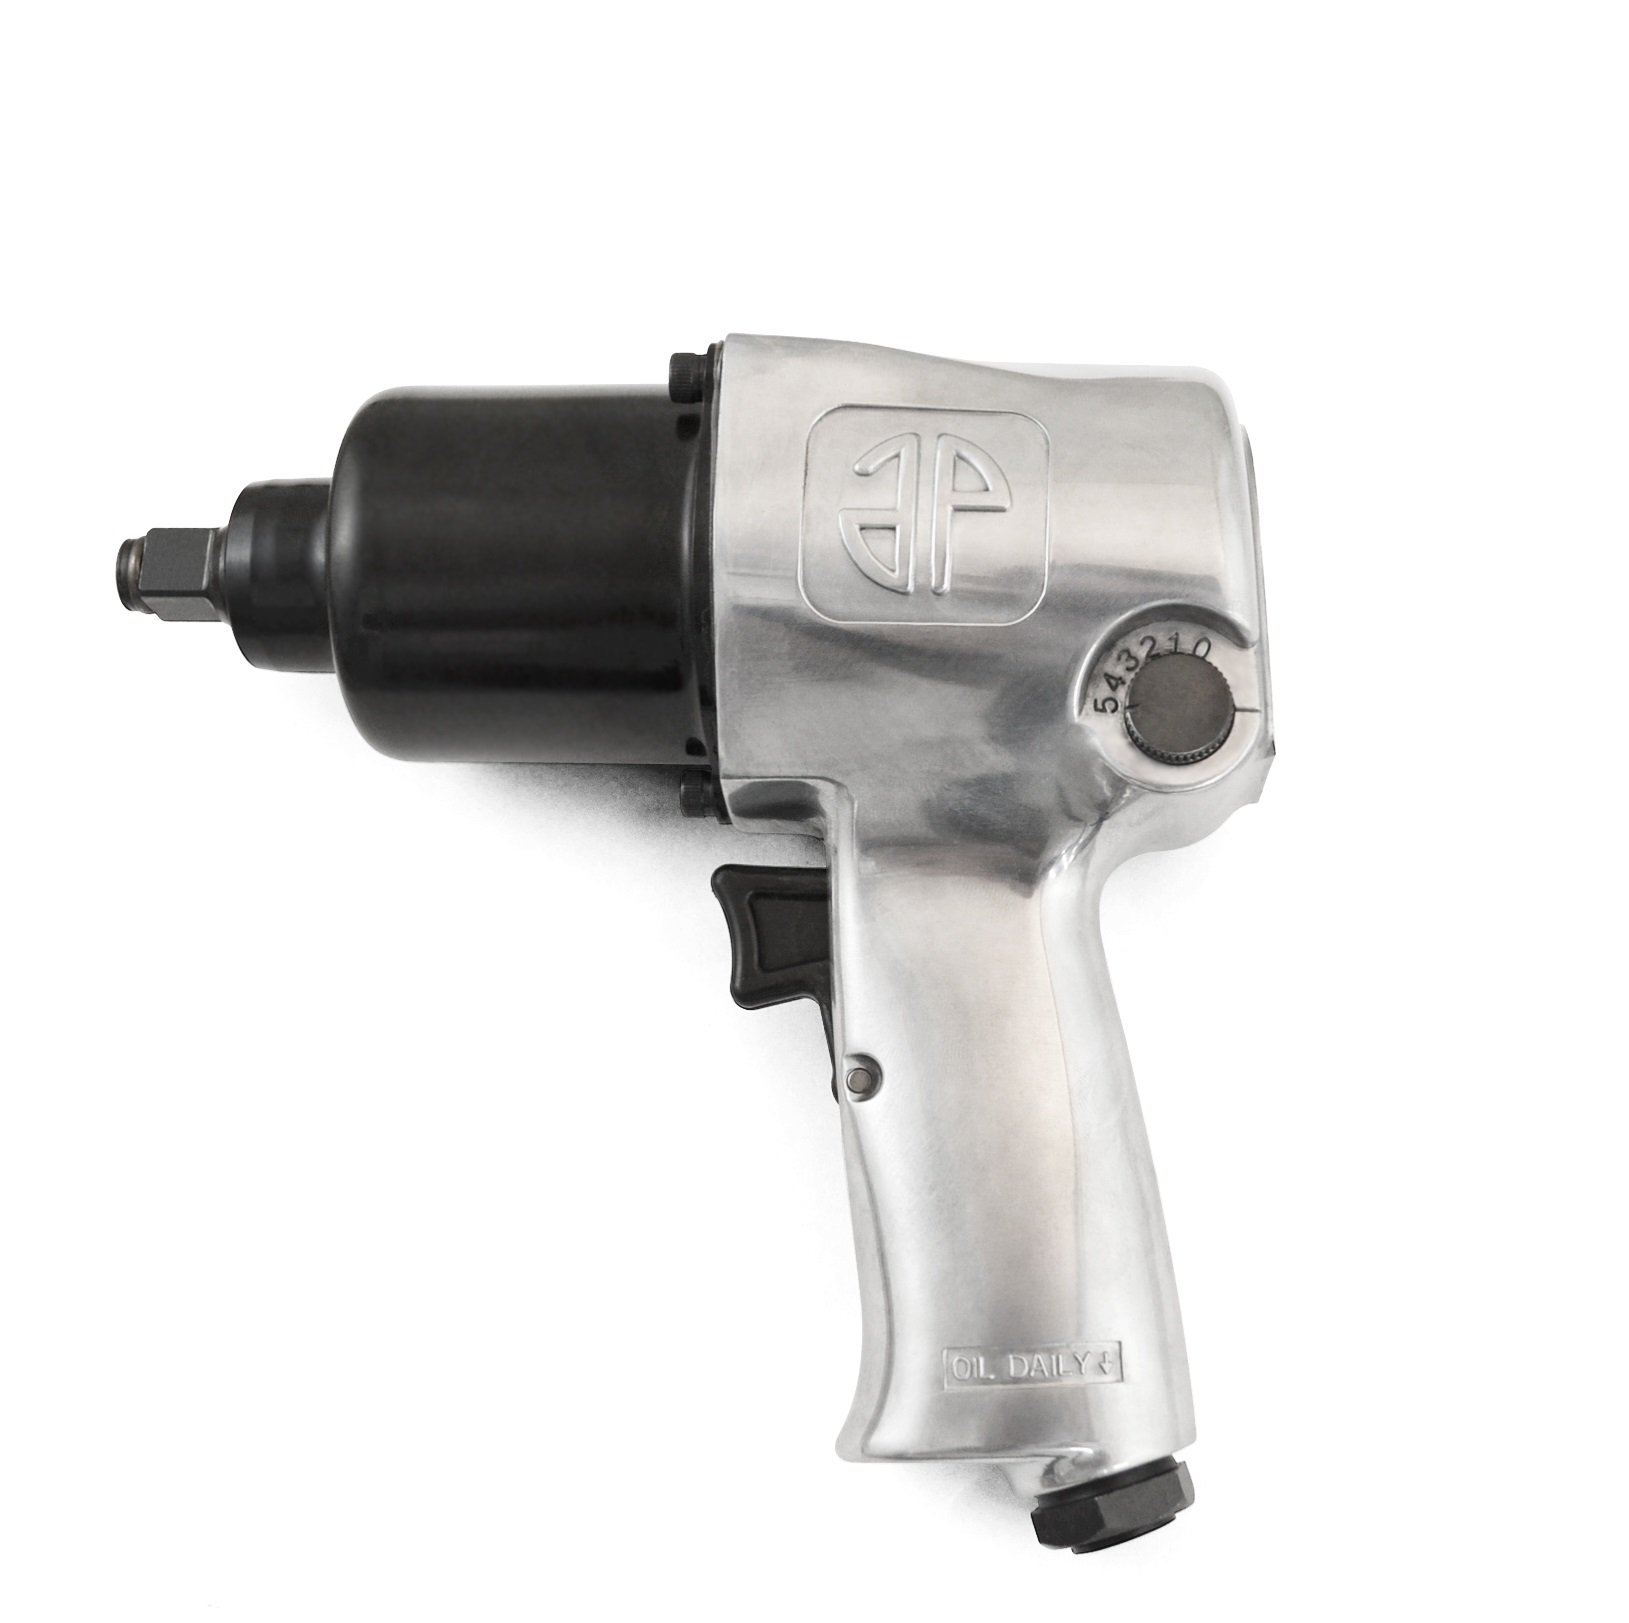 Astro 1812 1/2-Inch Super Duty Impact Wrench, Twin Hammer by Astro Pneumatic Tool